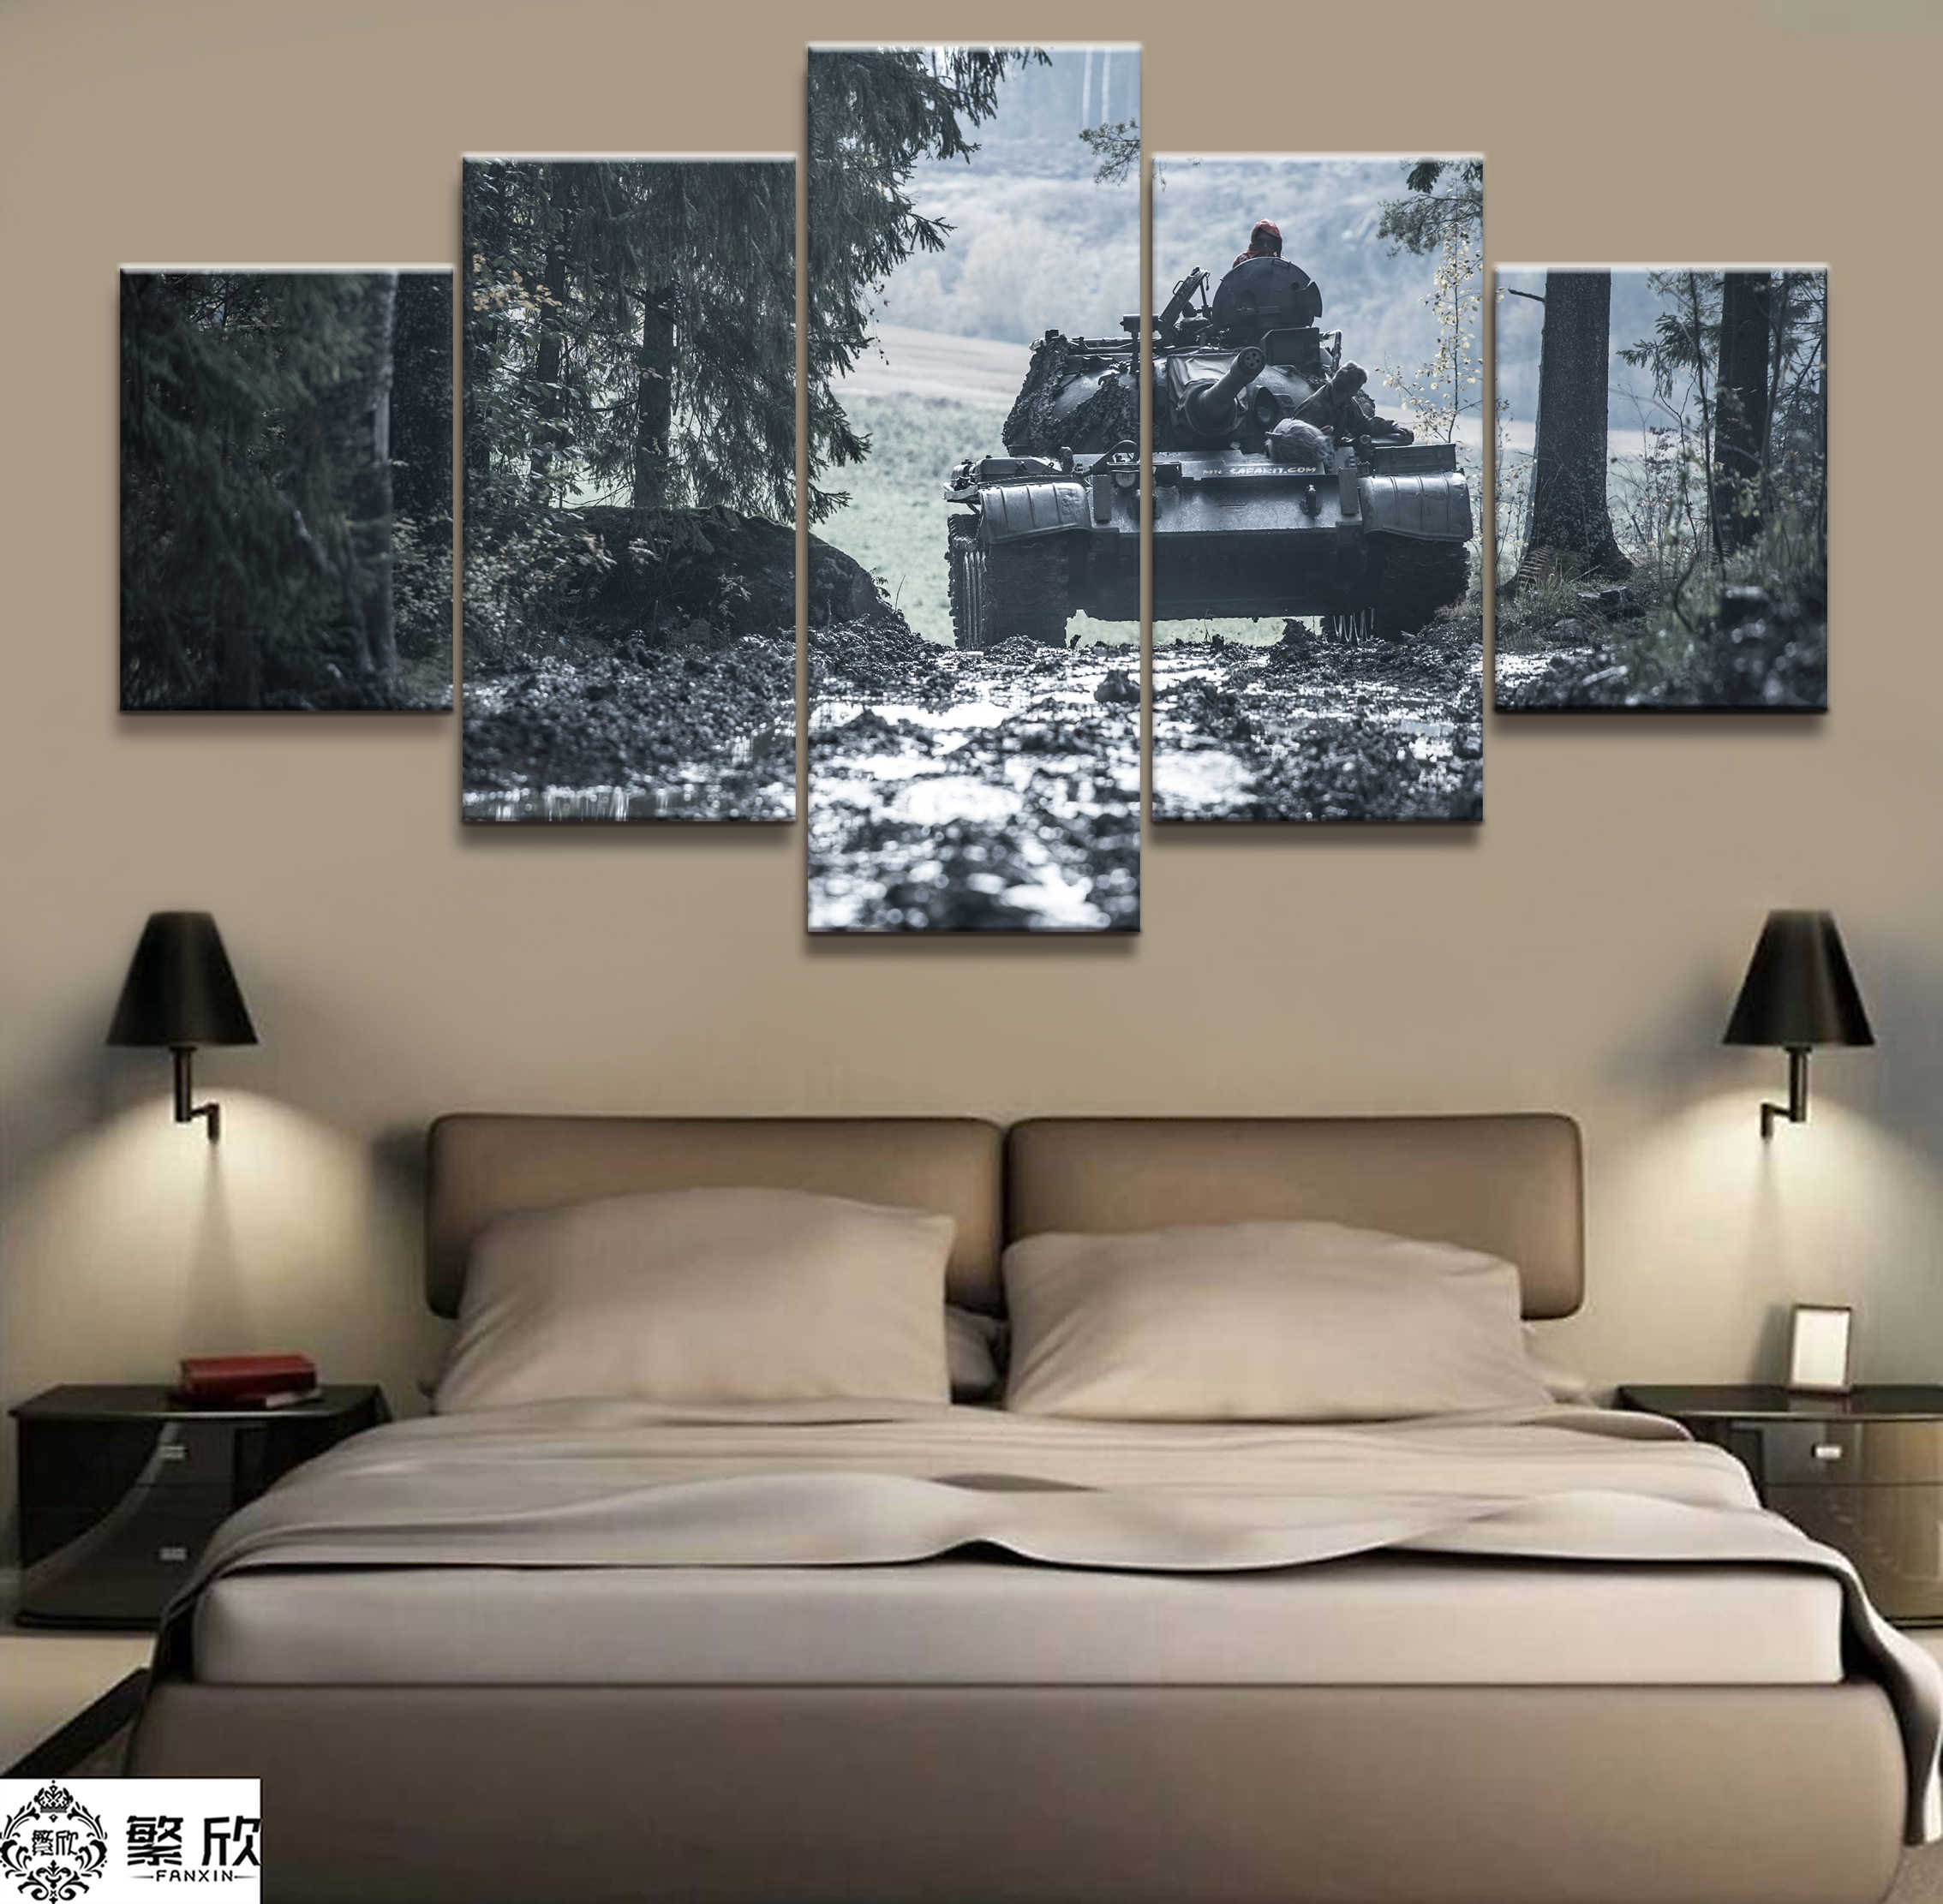 5 Pieces Military War Tank Arms Poster Modern Wall Art Decorative Modular Framework Picture Canvas HD Printed One Set Painting